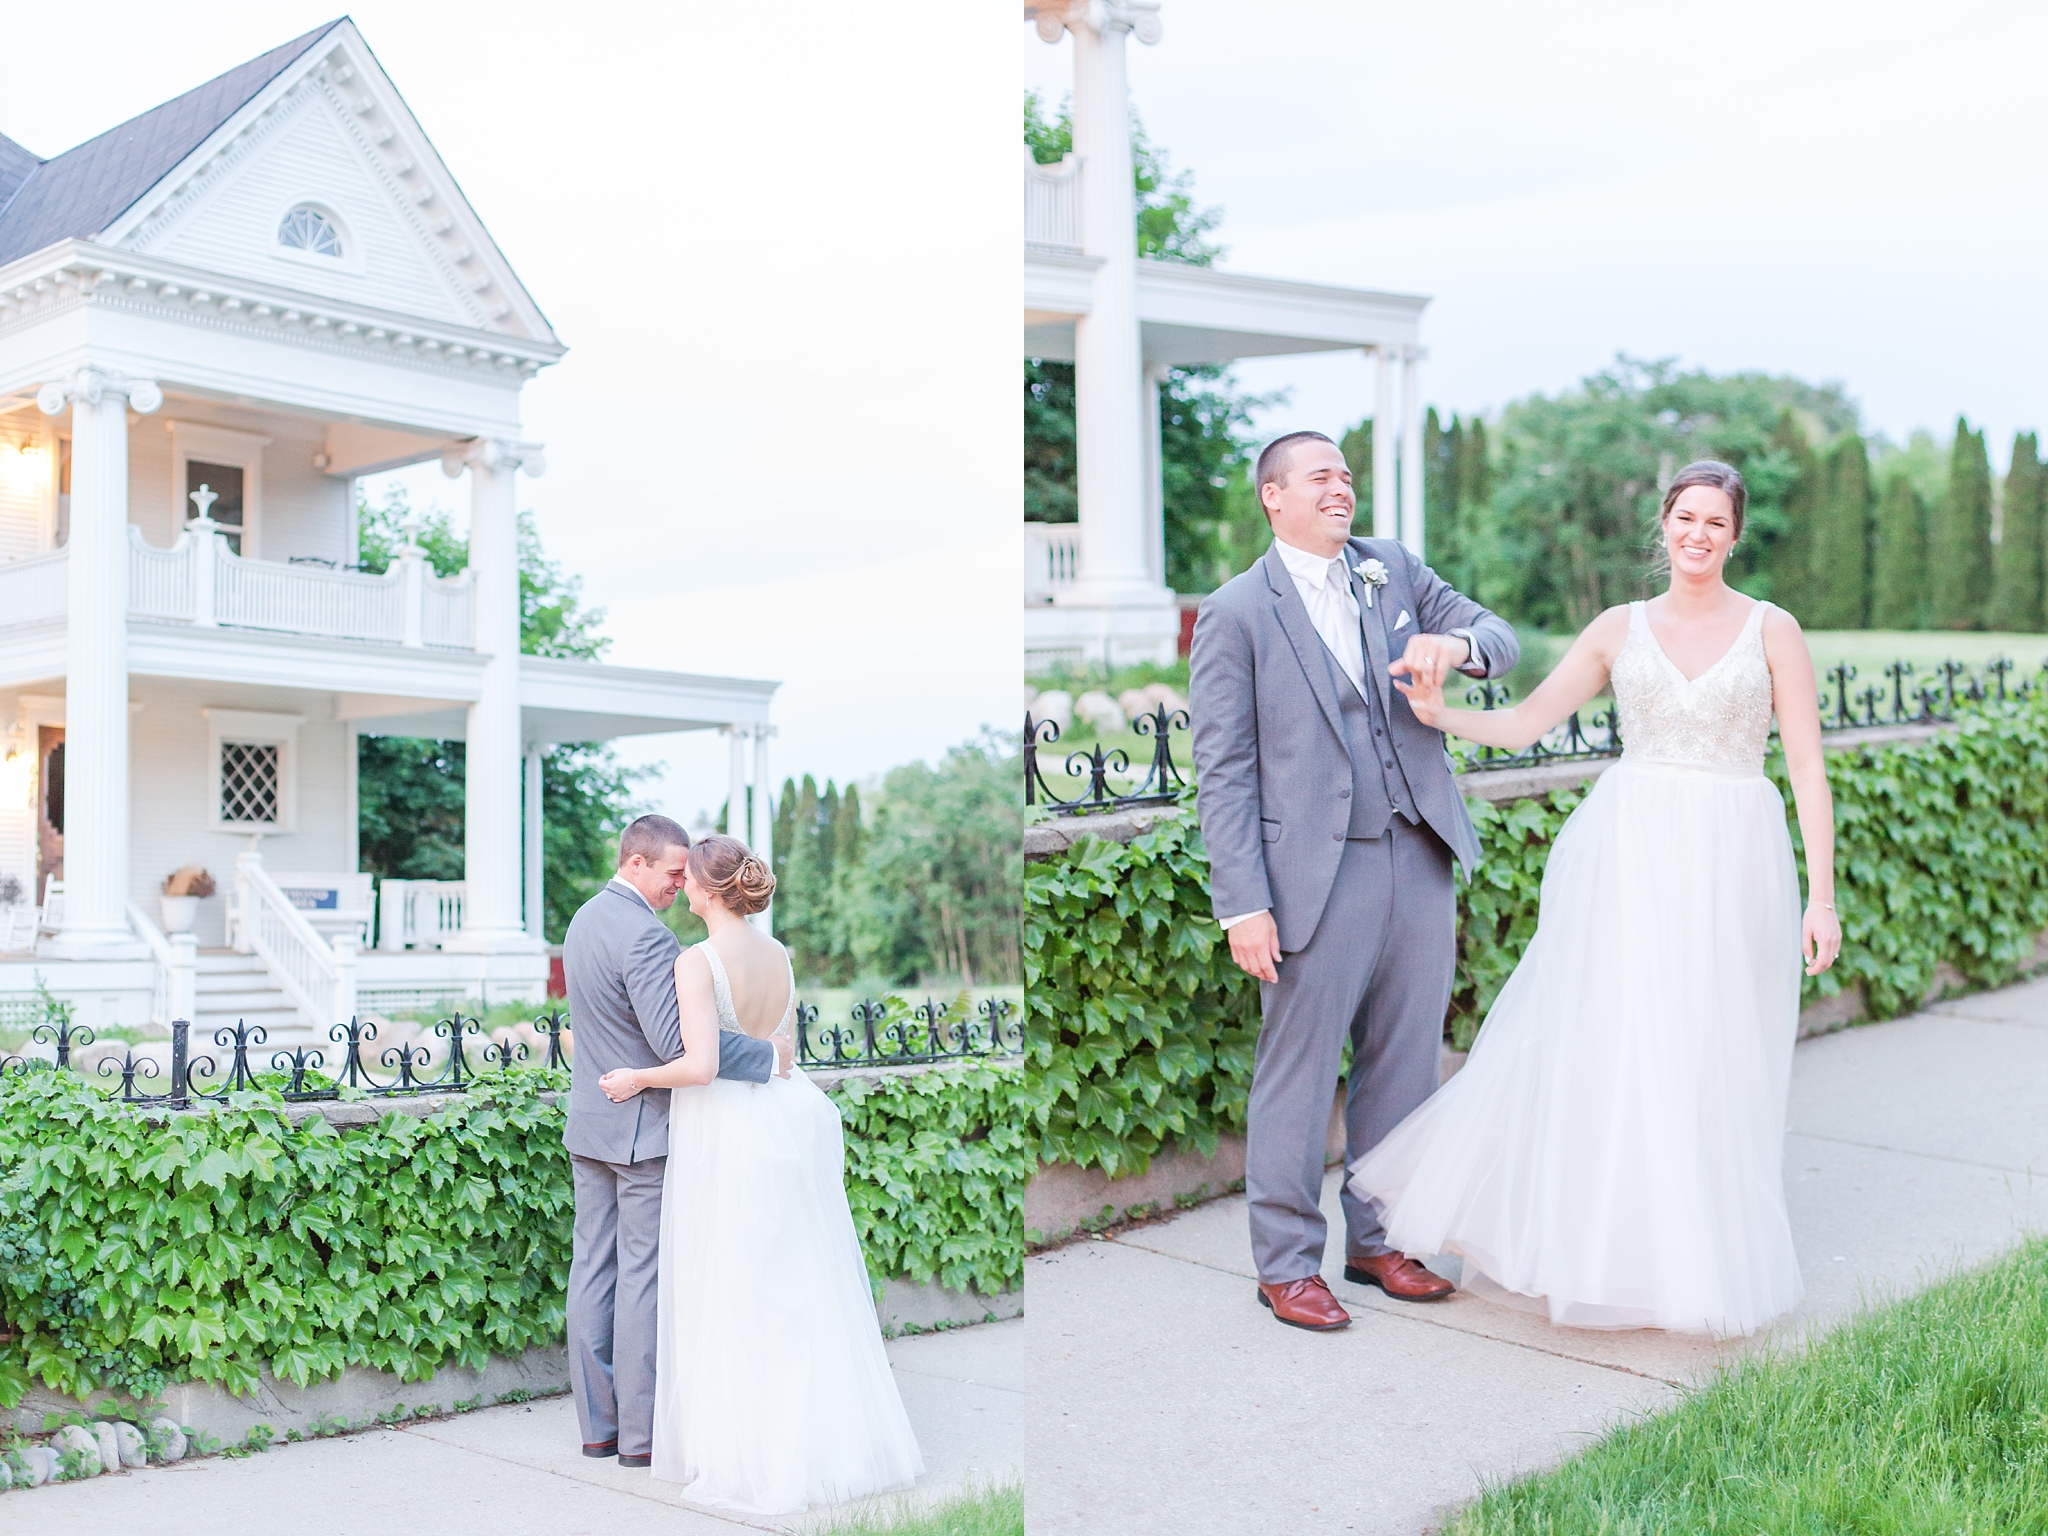 classic-intimate-fun-wedding-photos-at-the-meeting-house-grand-ballroom-in-plymouth-michigan-by-courtney-carolyn-photography_0098.jpg